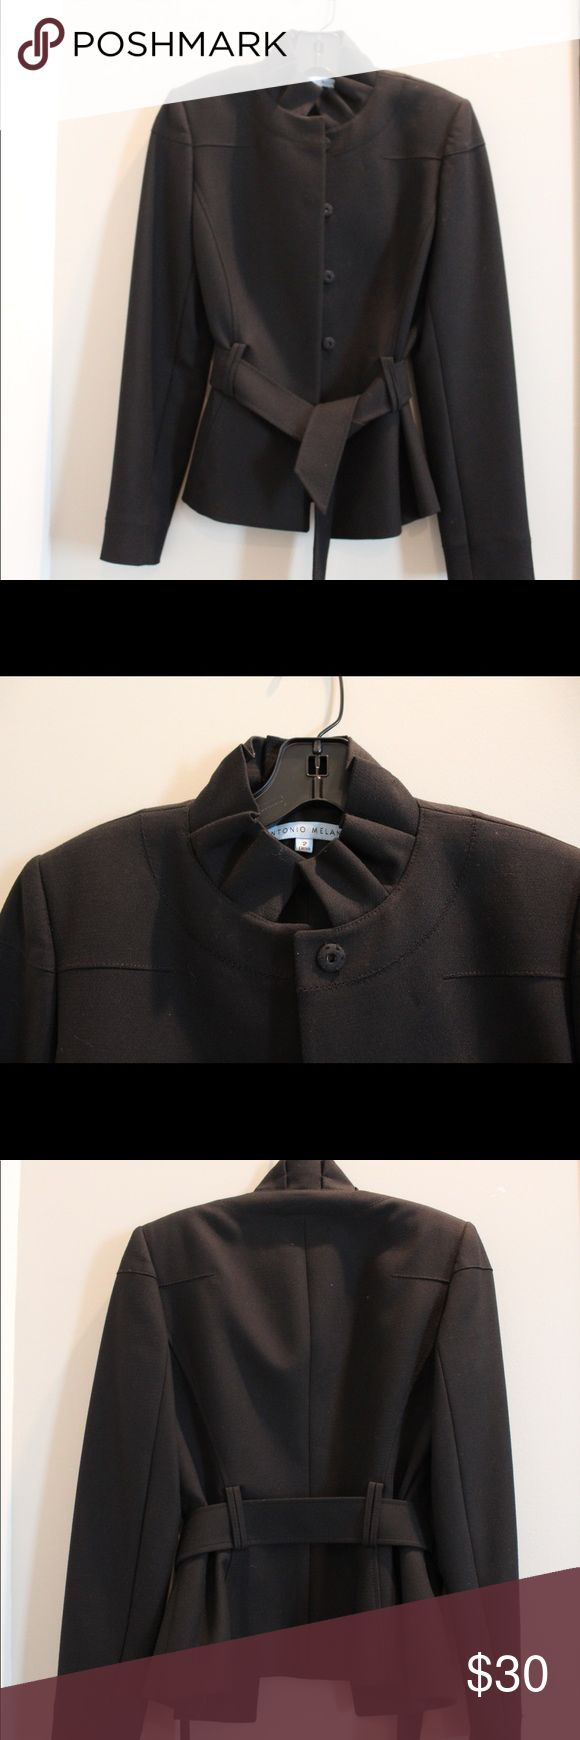 Antonio Melani suit Antonio Melanie black suit! • modern and slim fit • it buttons up and has a band to tie around the waist if desired • worn very little • perfect conditions ANTONIO MELANI Jackets & Coats